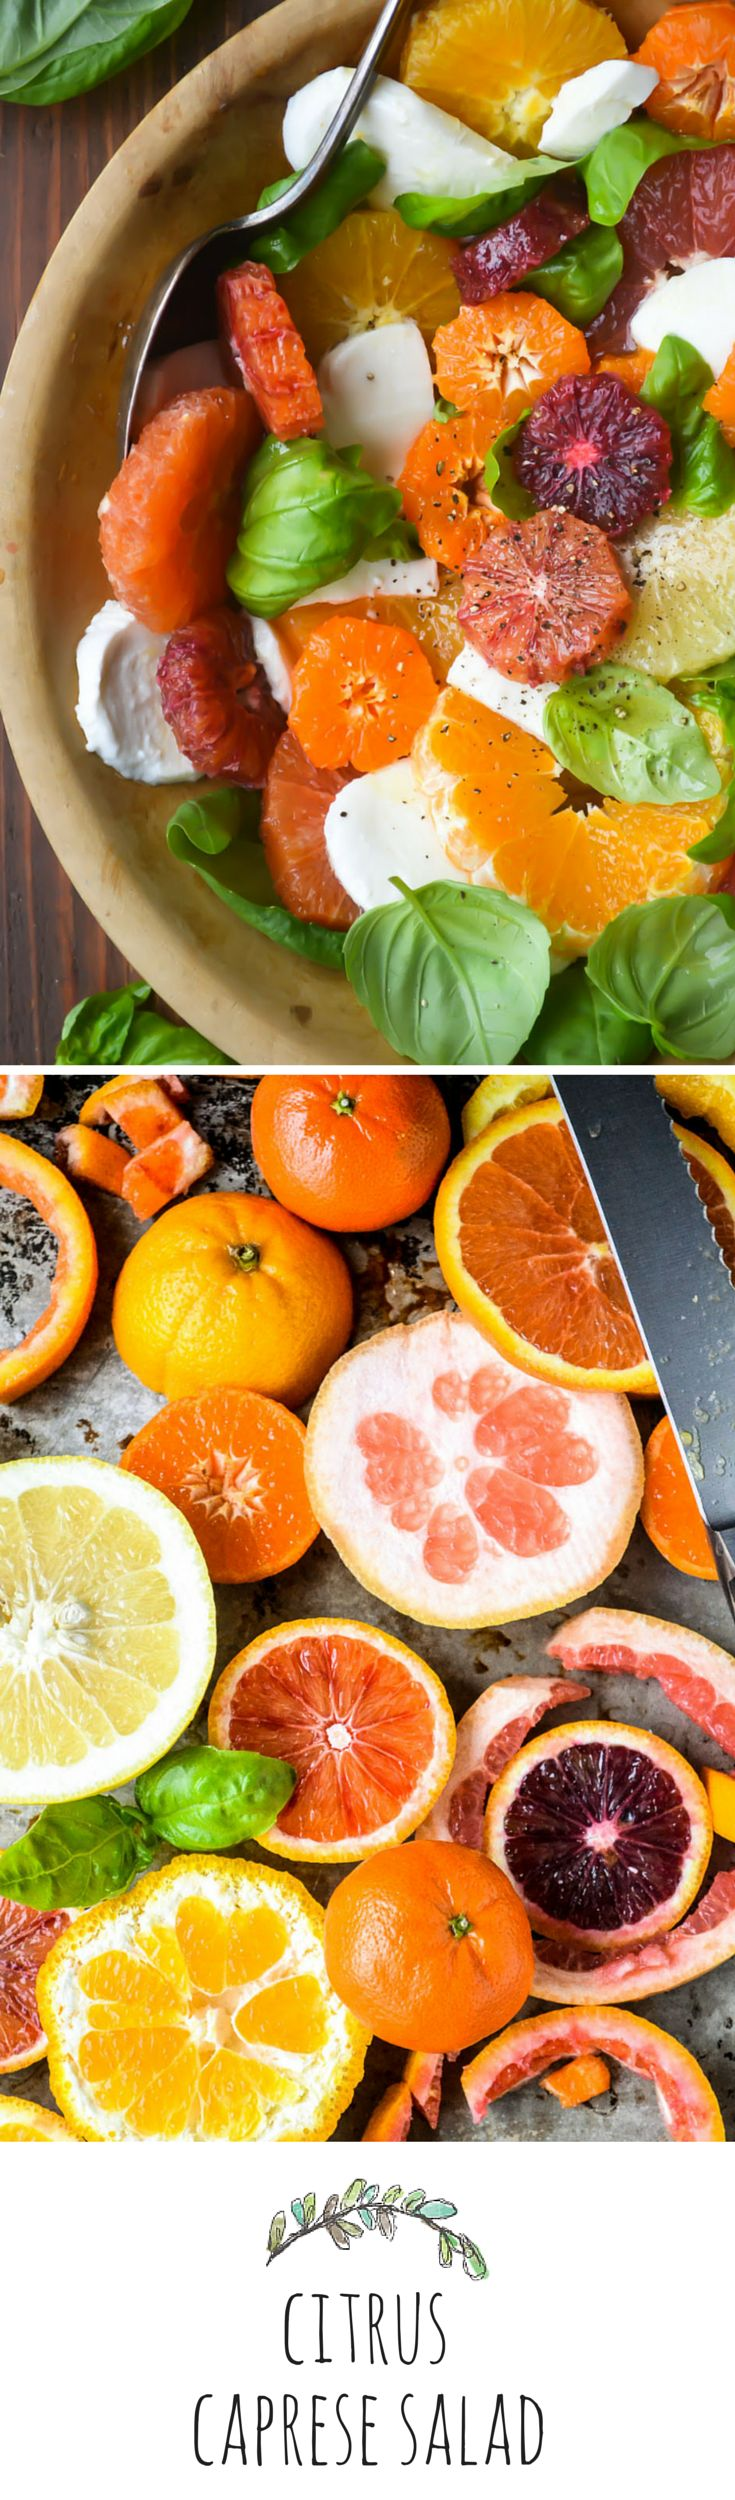 Winterize your favorite summer salad with juicy citrus!